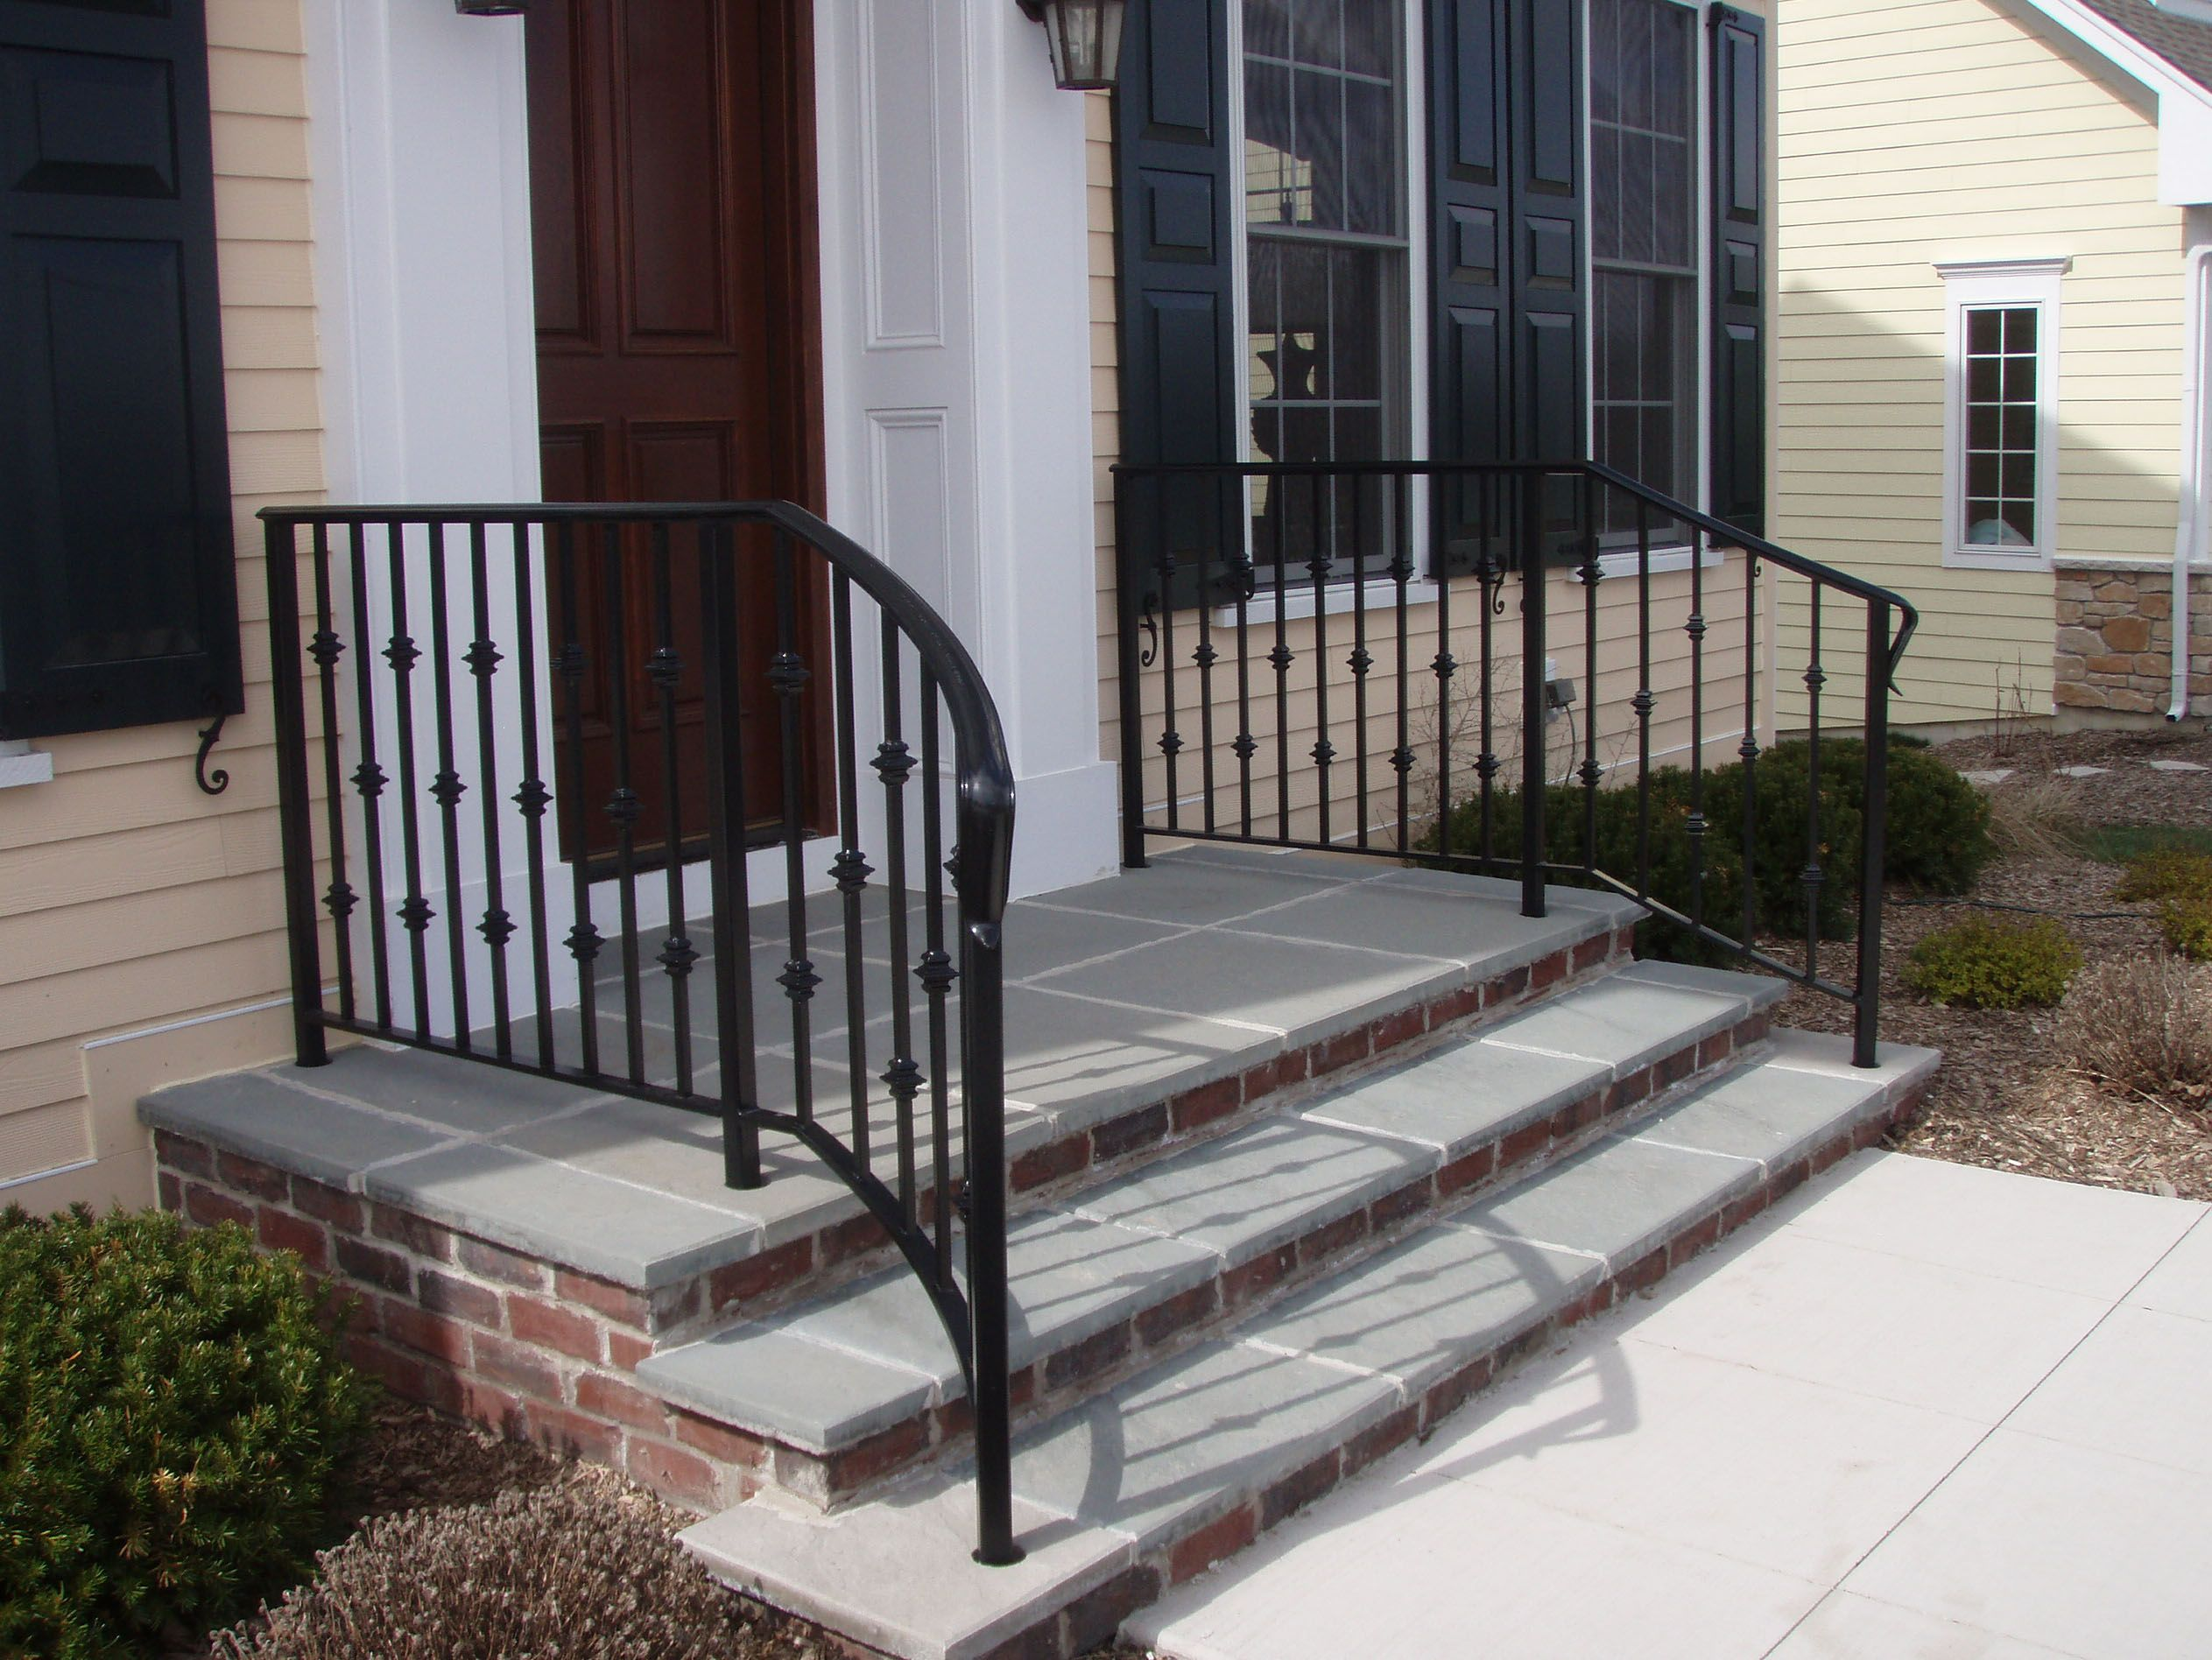 Wrought Iron Railings Curving Away From The Top Step I | Iron Railings For Steps